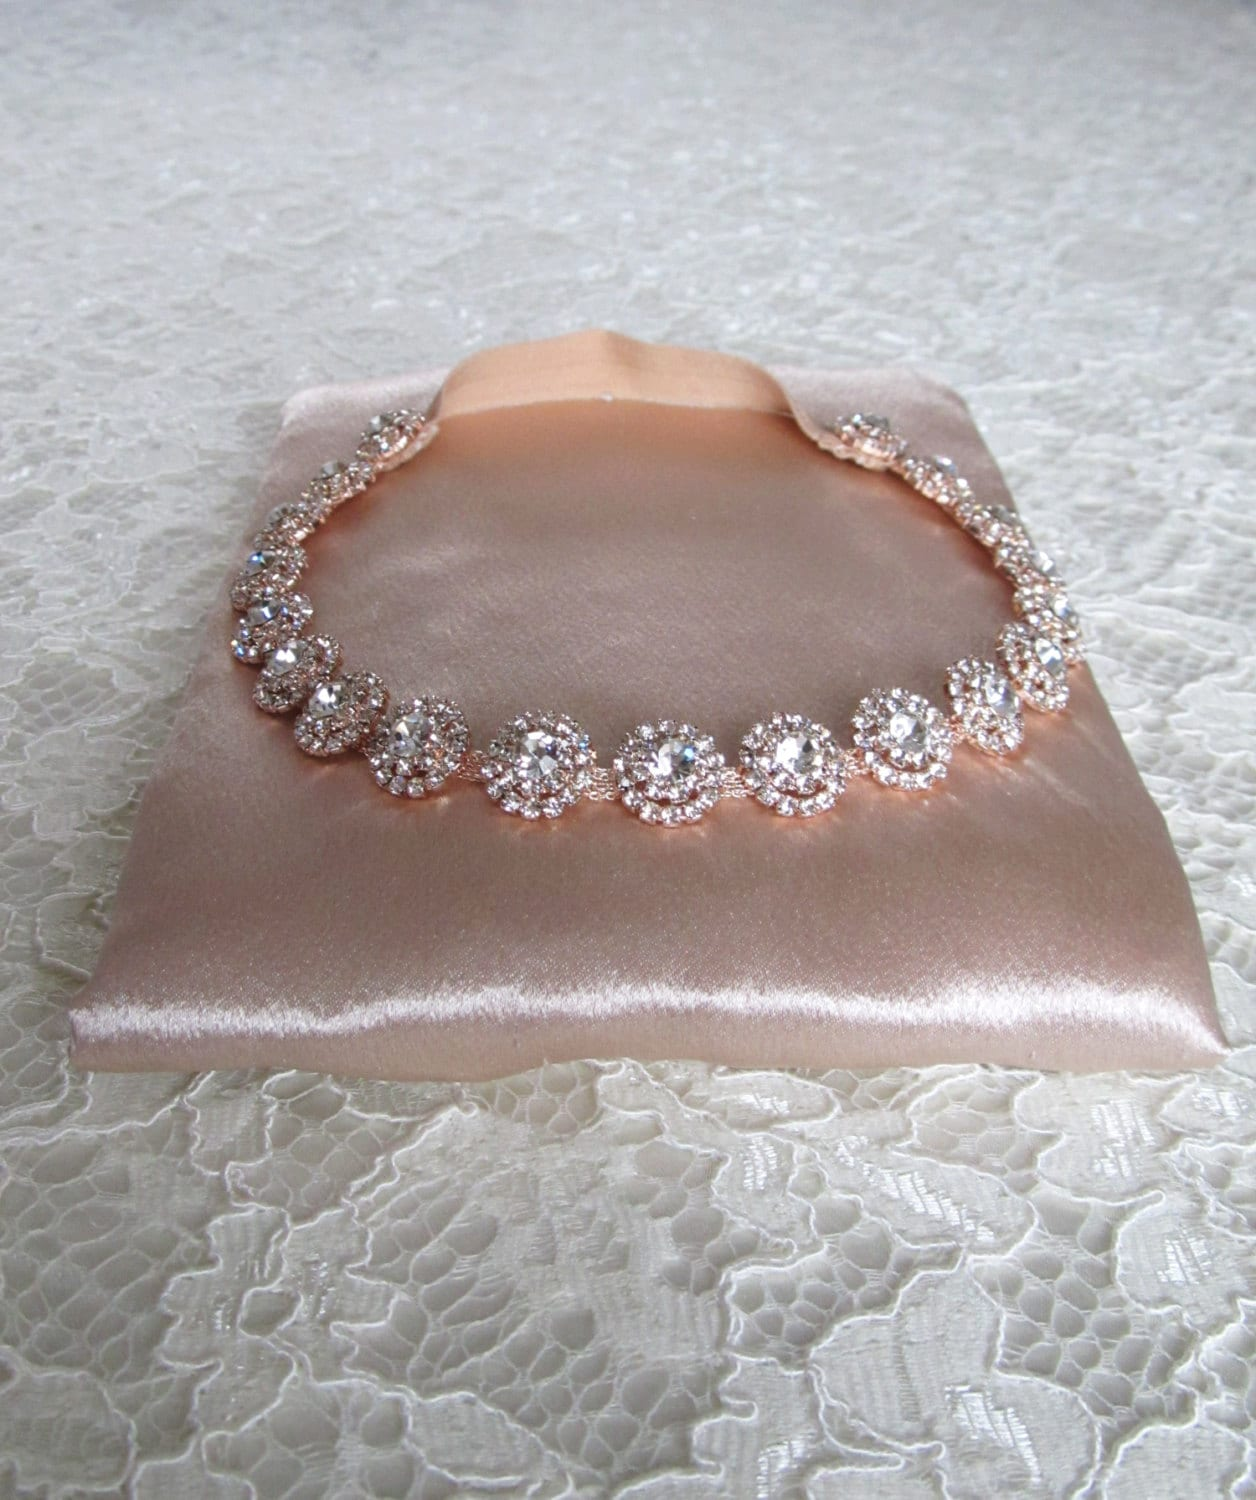 Rose Gold Crystal Rhinestone Bridal Garter,Wedding Garter,Bridal Accessories,Style #G23